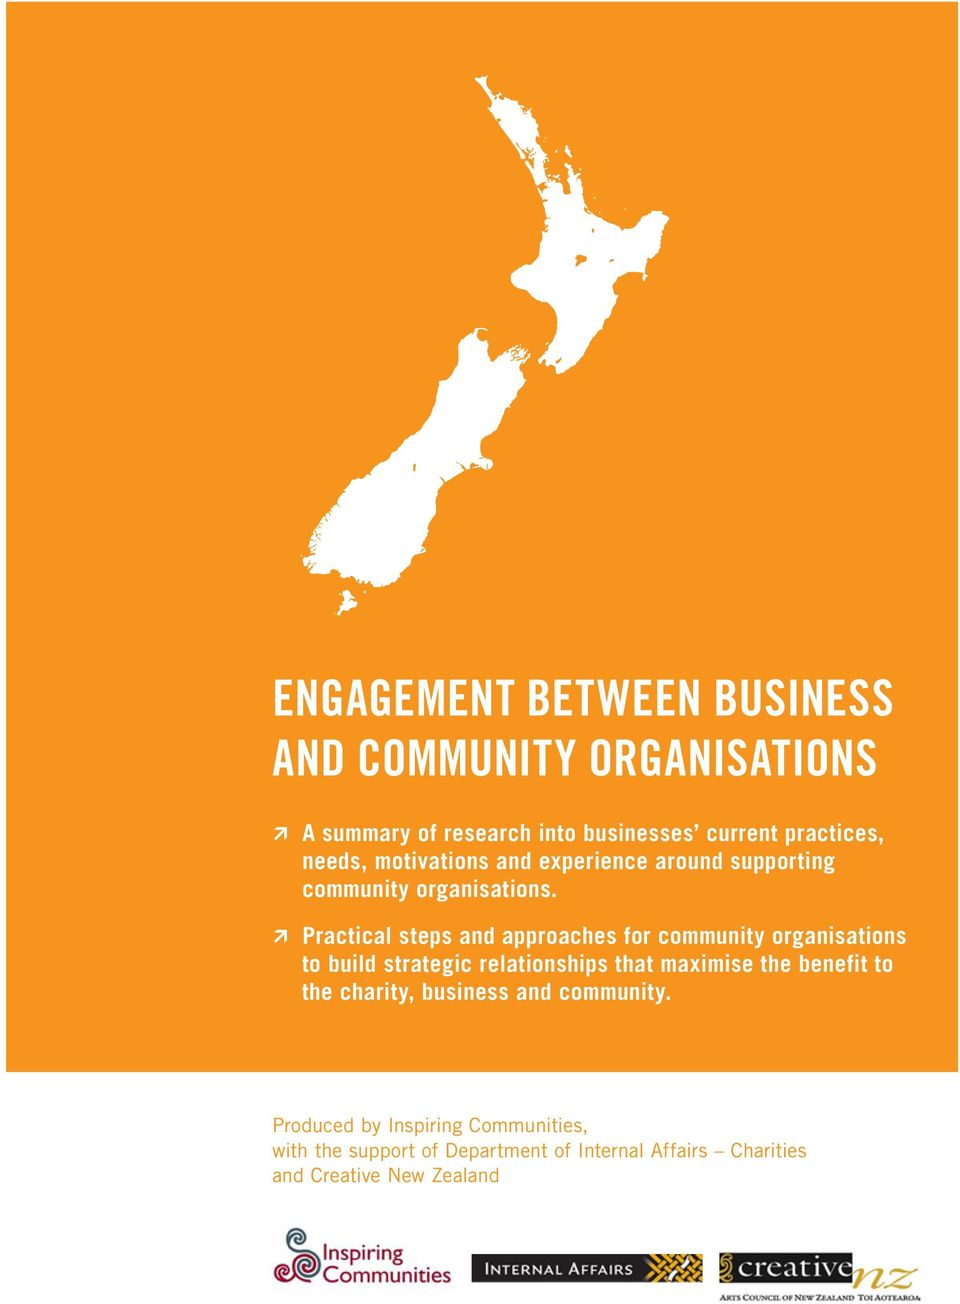 À À Practical steps and approaches for community organisations to build strategic relationships that maximise the